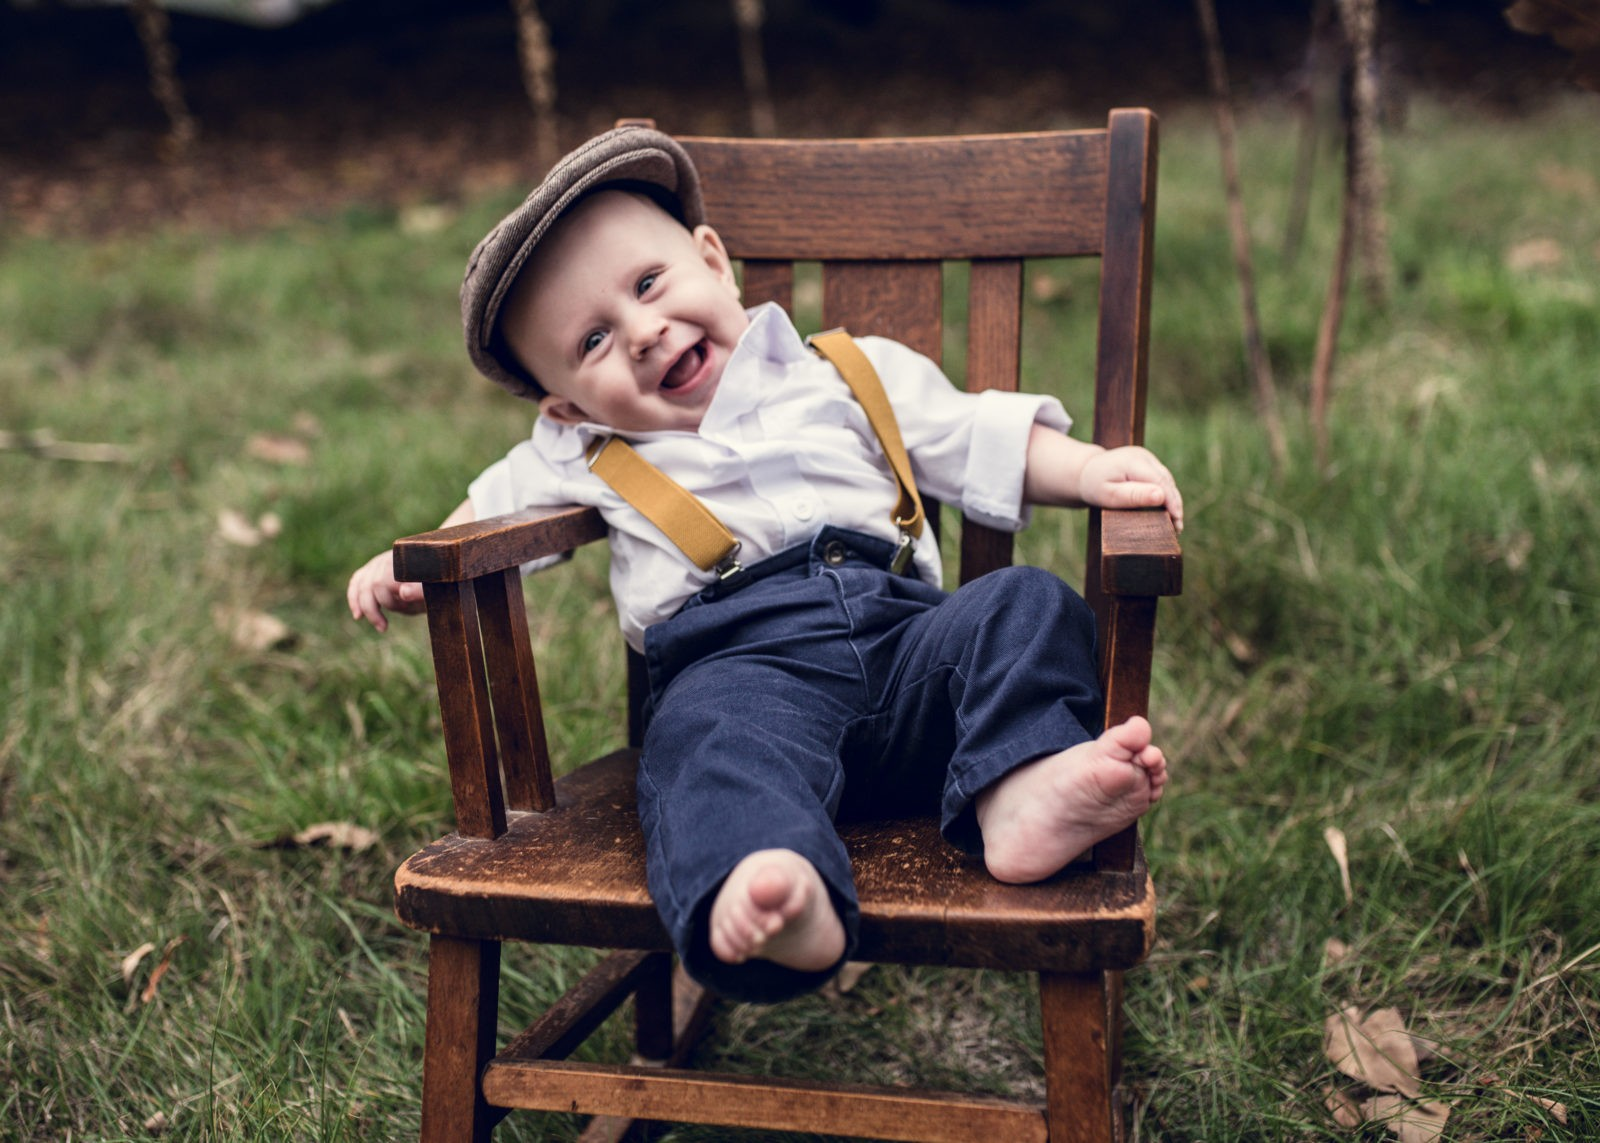 Close up photo of happy baby dressed up in suspenders and hat, smiling at the camera for ArtShaped Photography and Birth Services during his family photography session in Santa Monica